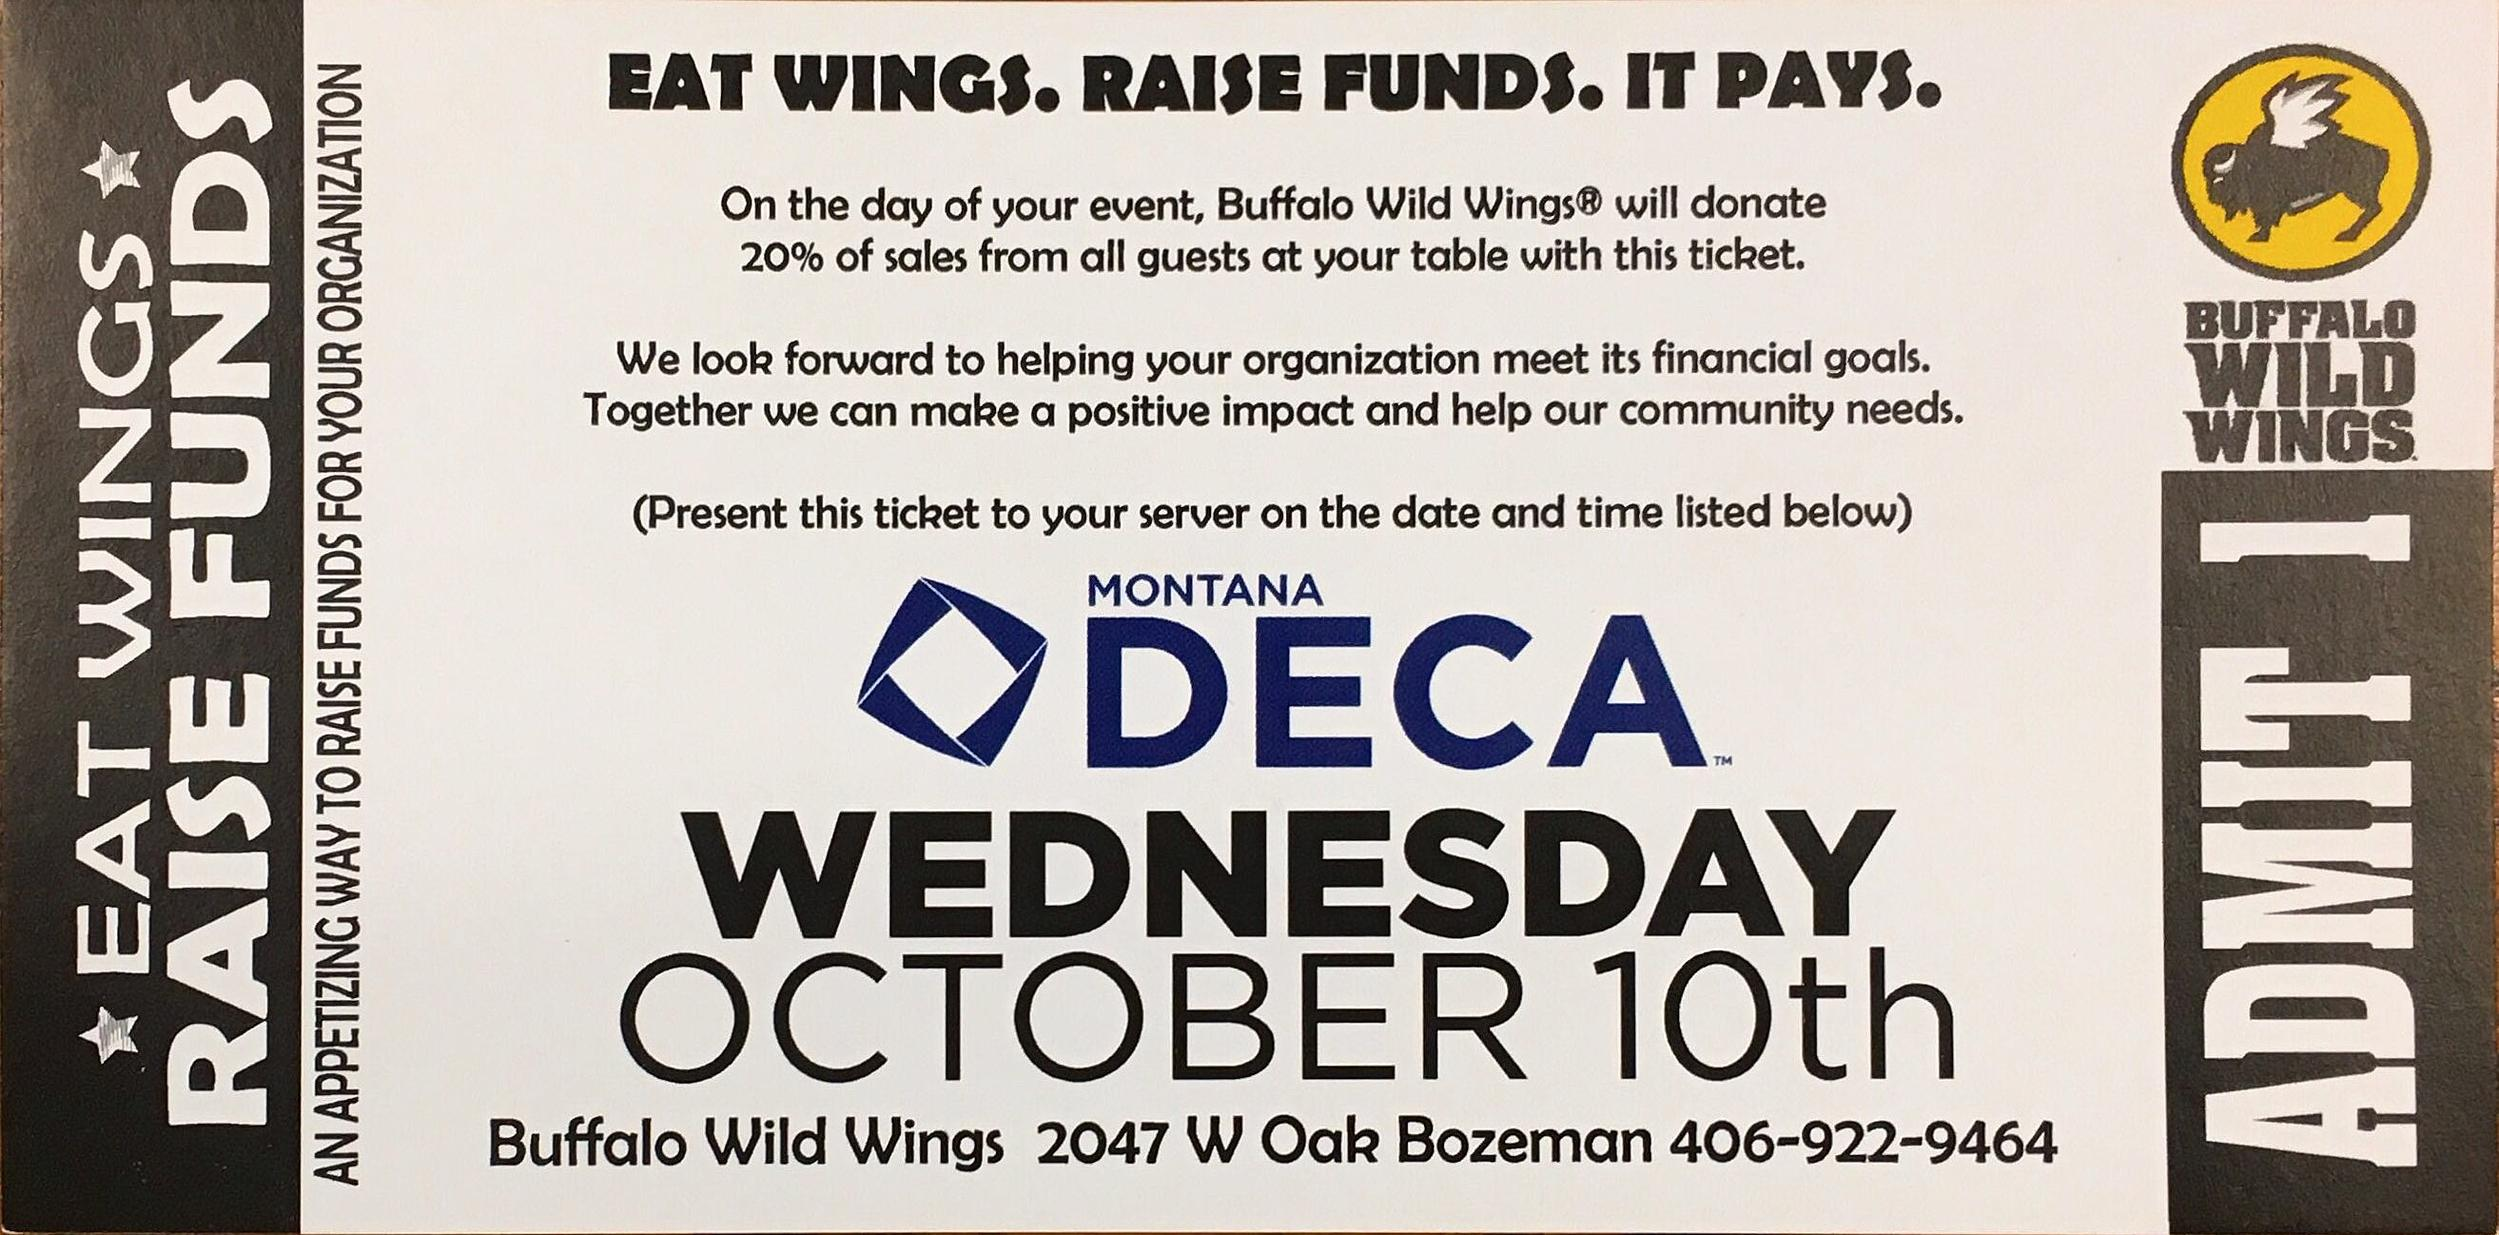 Enjoy Wings and Help Kids at Bozeman High School